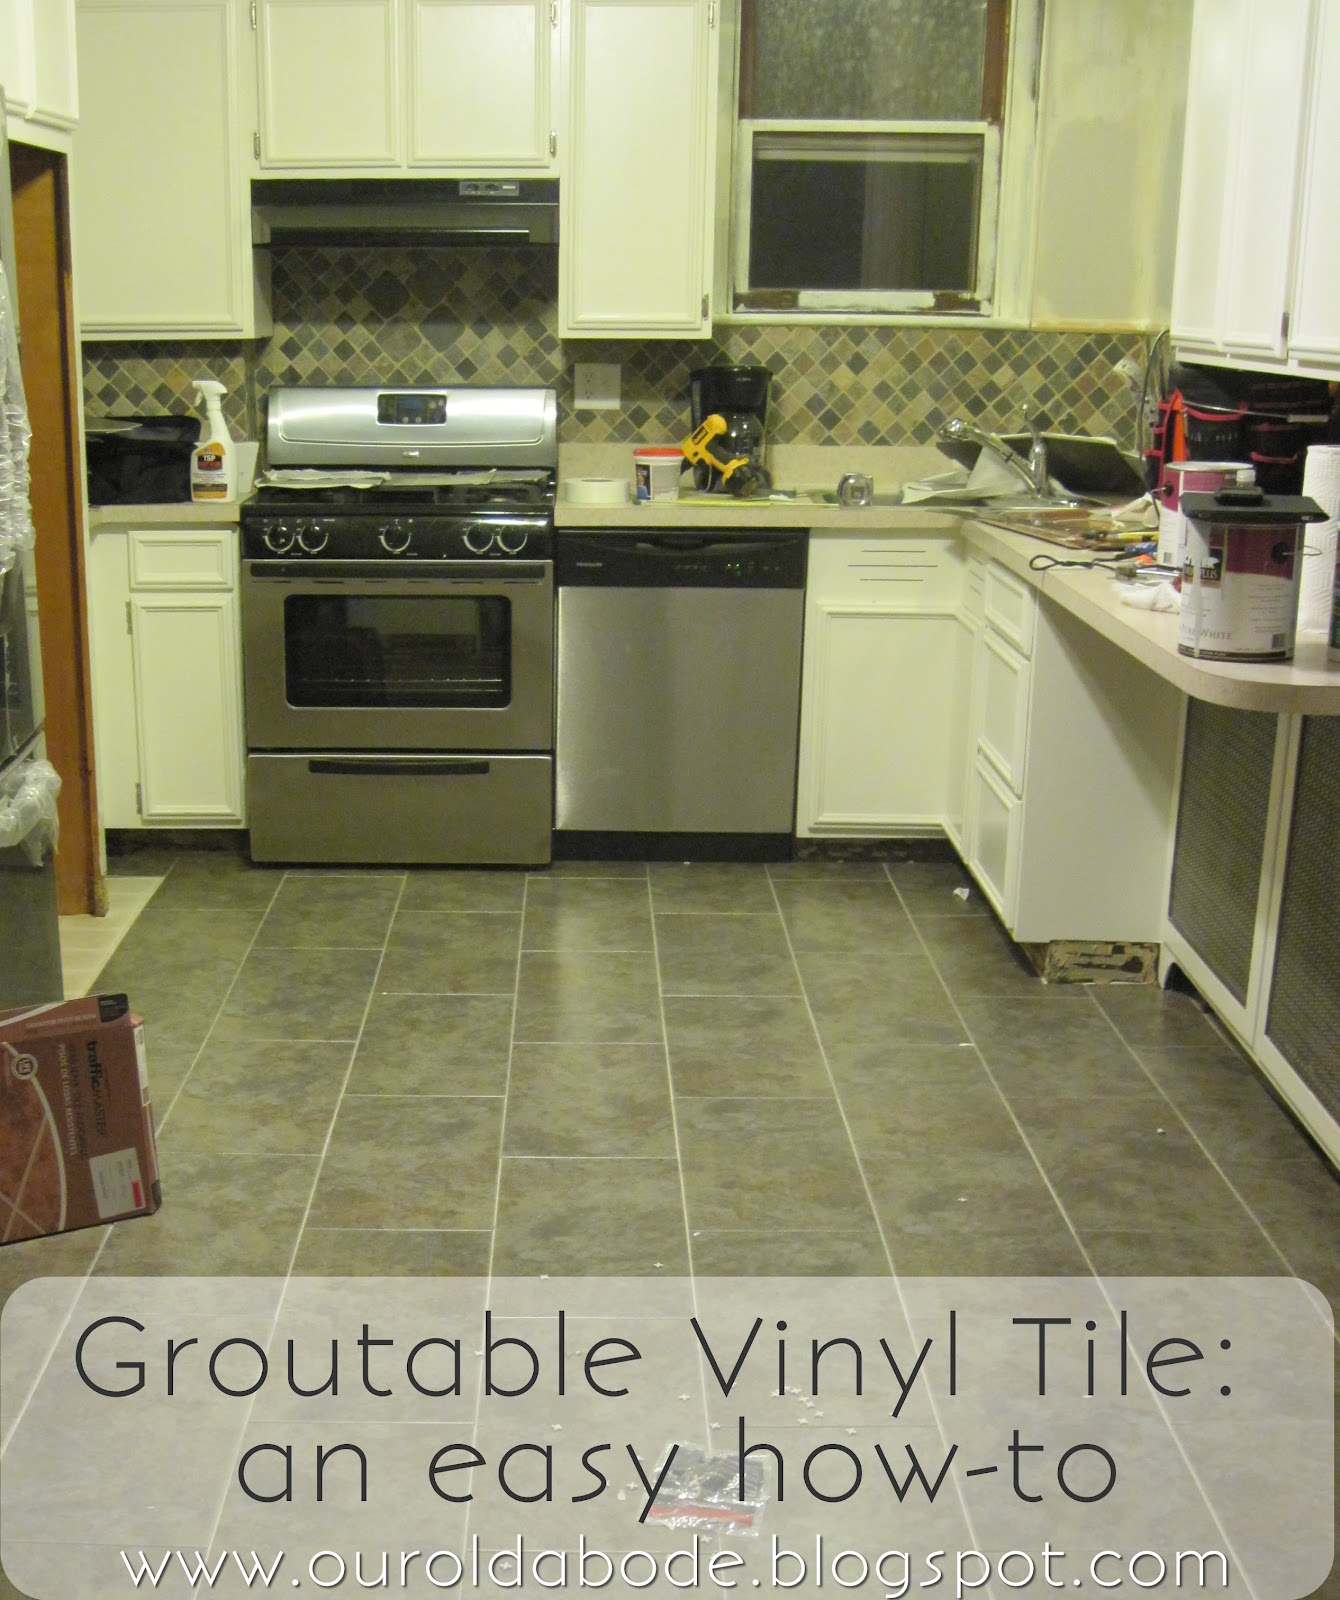 Our old abode kitchen floor groutable vinyl tile for Best vinyl flooring for kitchens